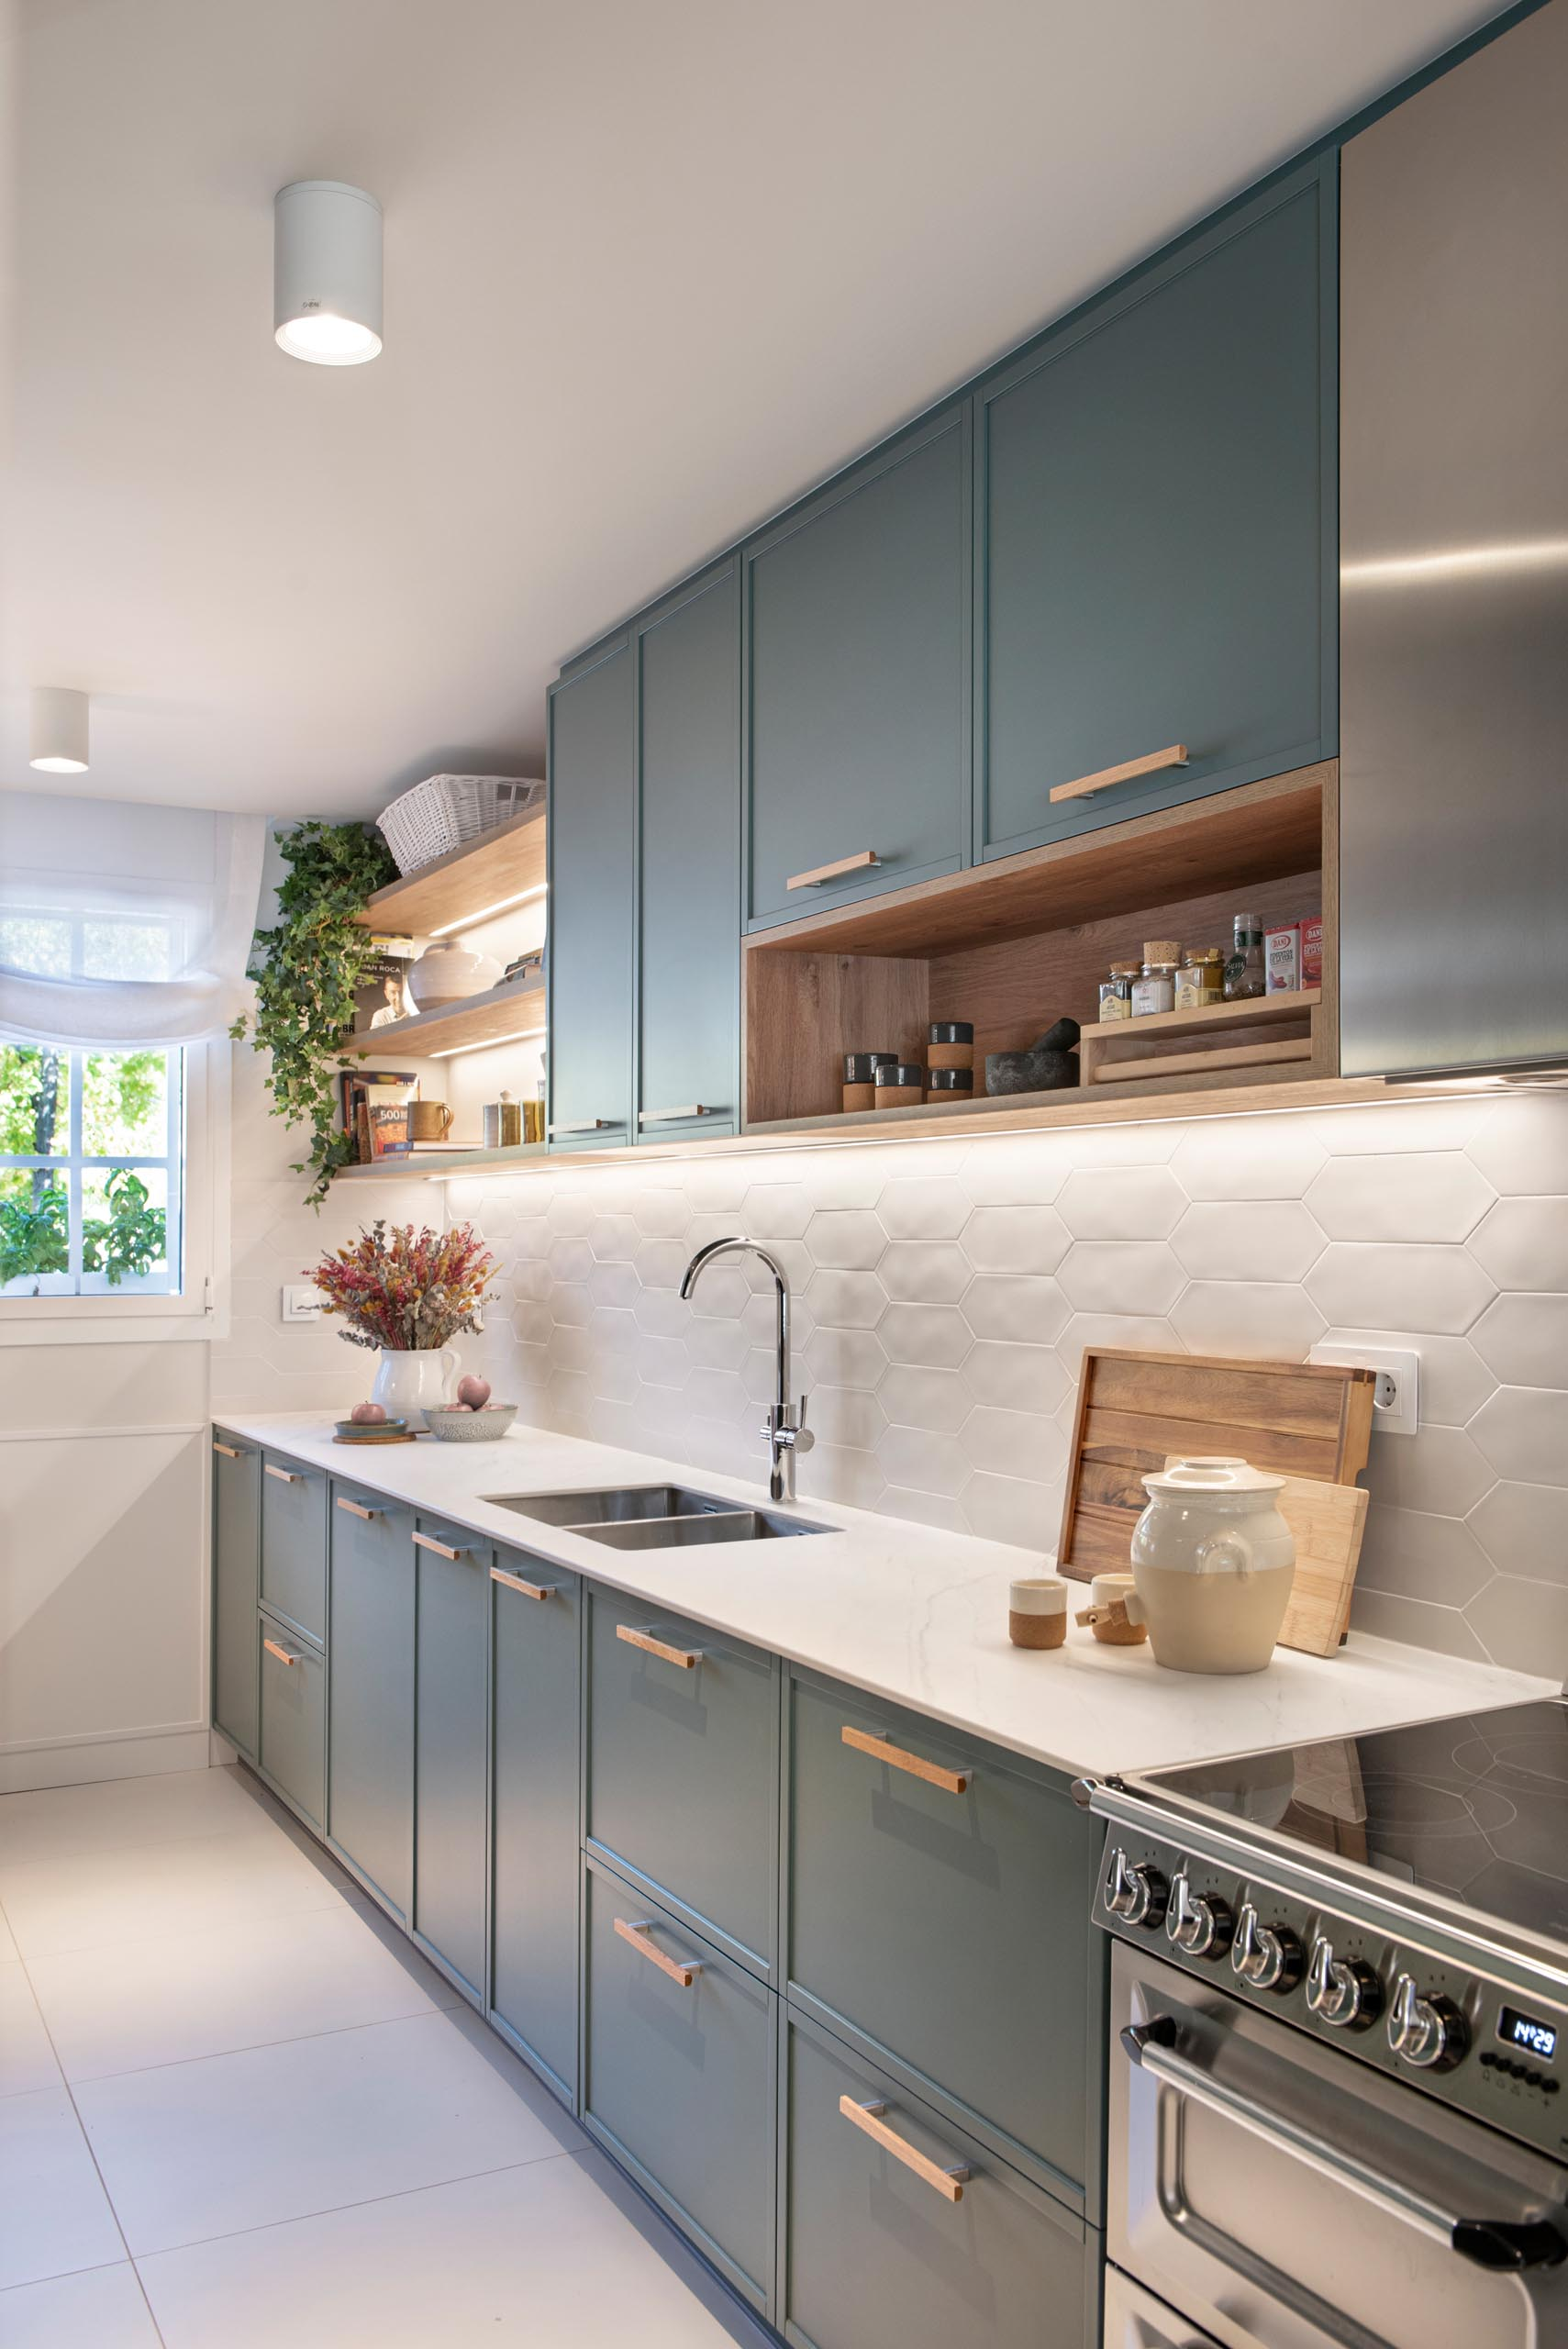 A modern kitchen enclosed within white-framed windows, includes white cabinets that have been paired with a matte green cabinets, while white tiles have been used for the backsplash. An eat-in breakfast nook is tucked into the corner and includes a built-in bench, and a mirrored wall, which makes the space feel larger.